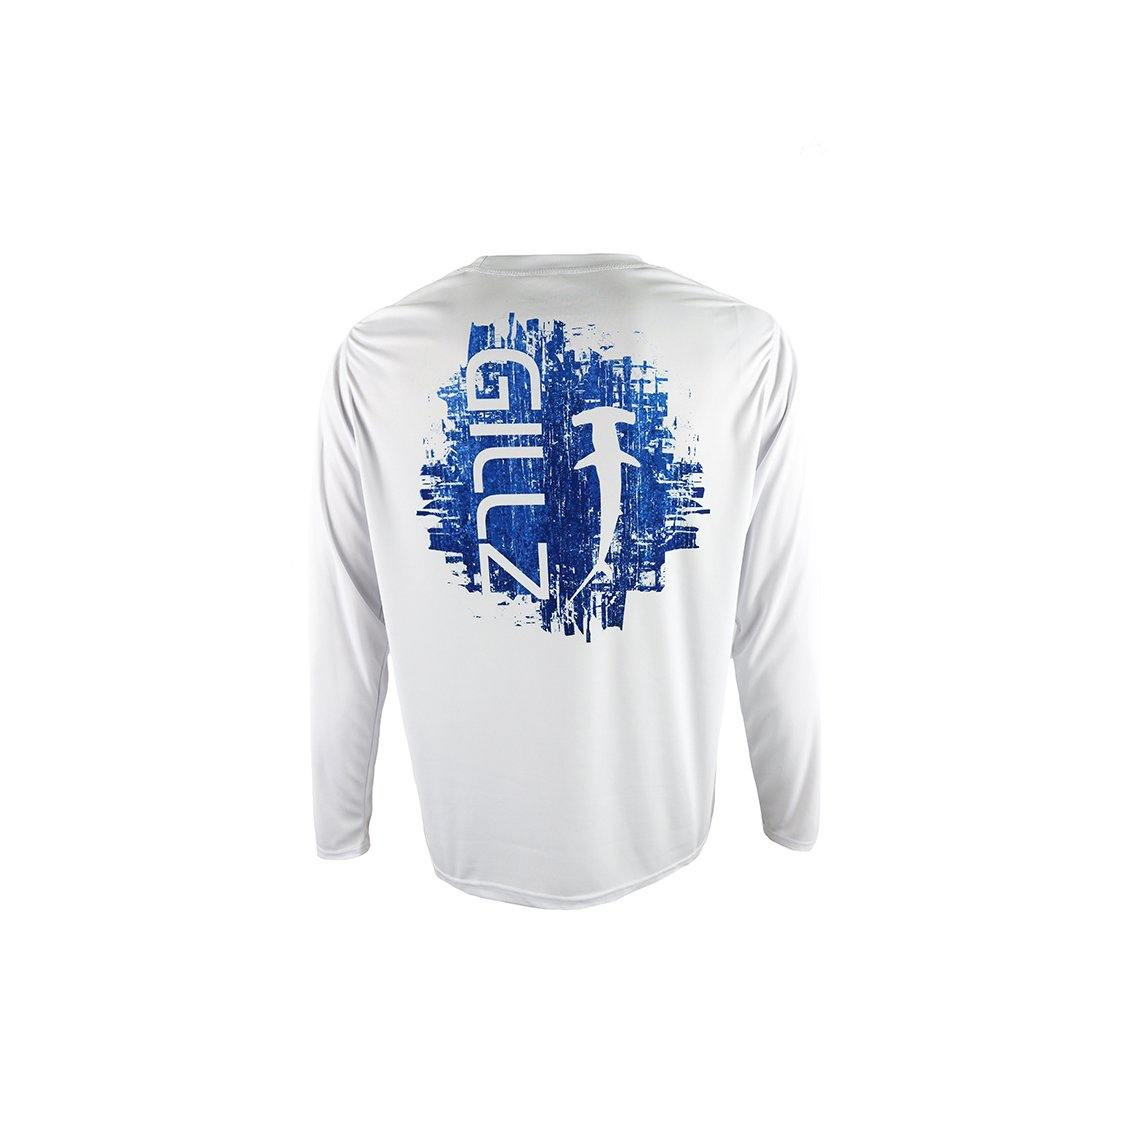 "Gillz Men's Long Sleeve UV ""HammerHead"" - White"